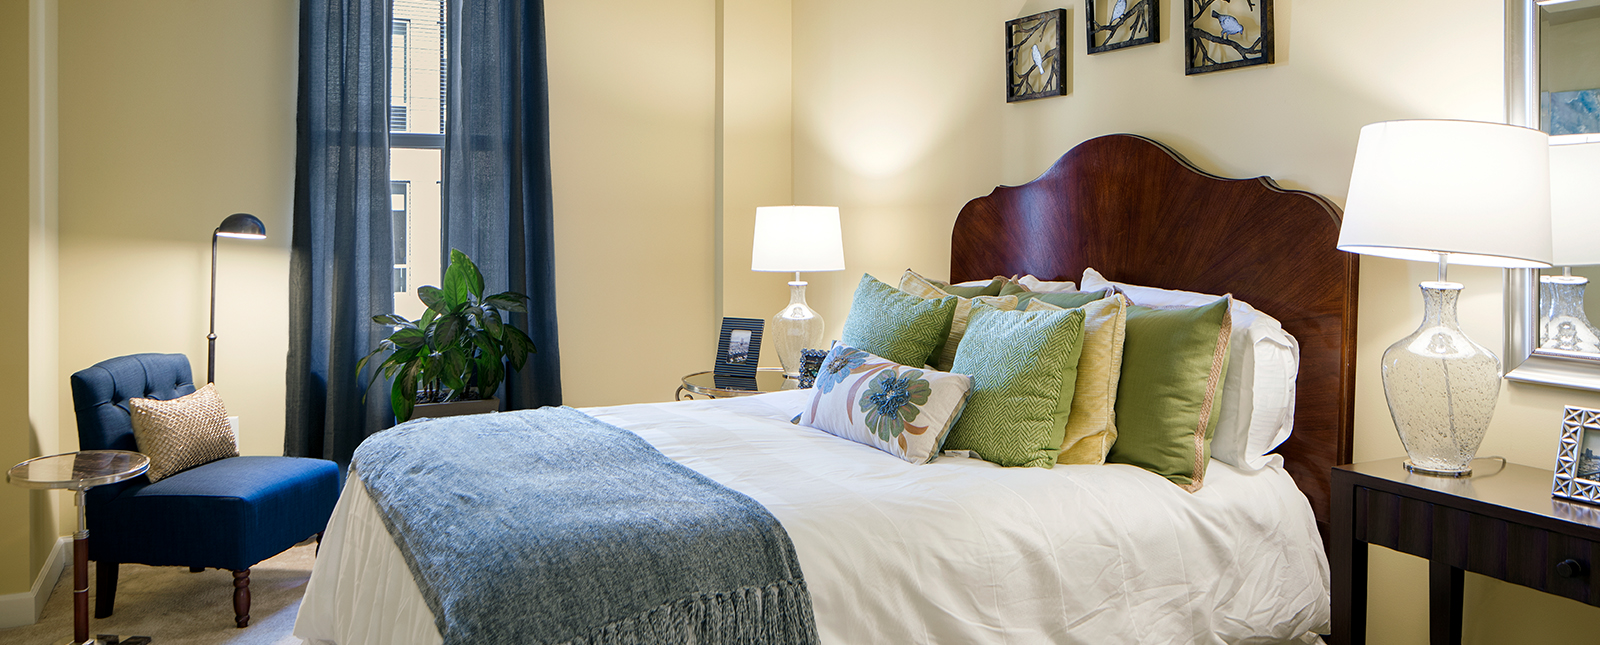 Comfortable bed at Spinnaker Bay Serviced Apartments